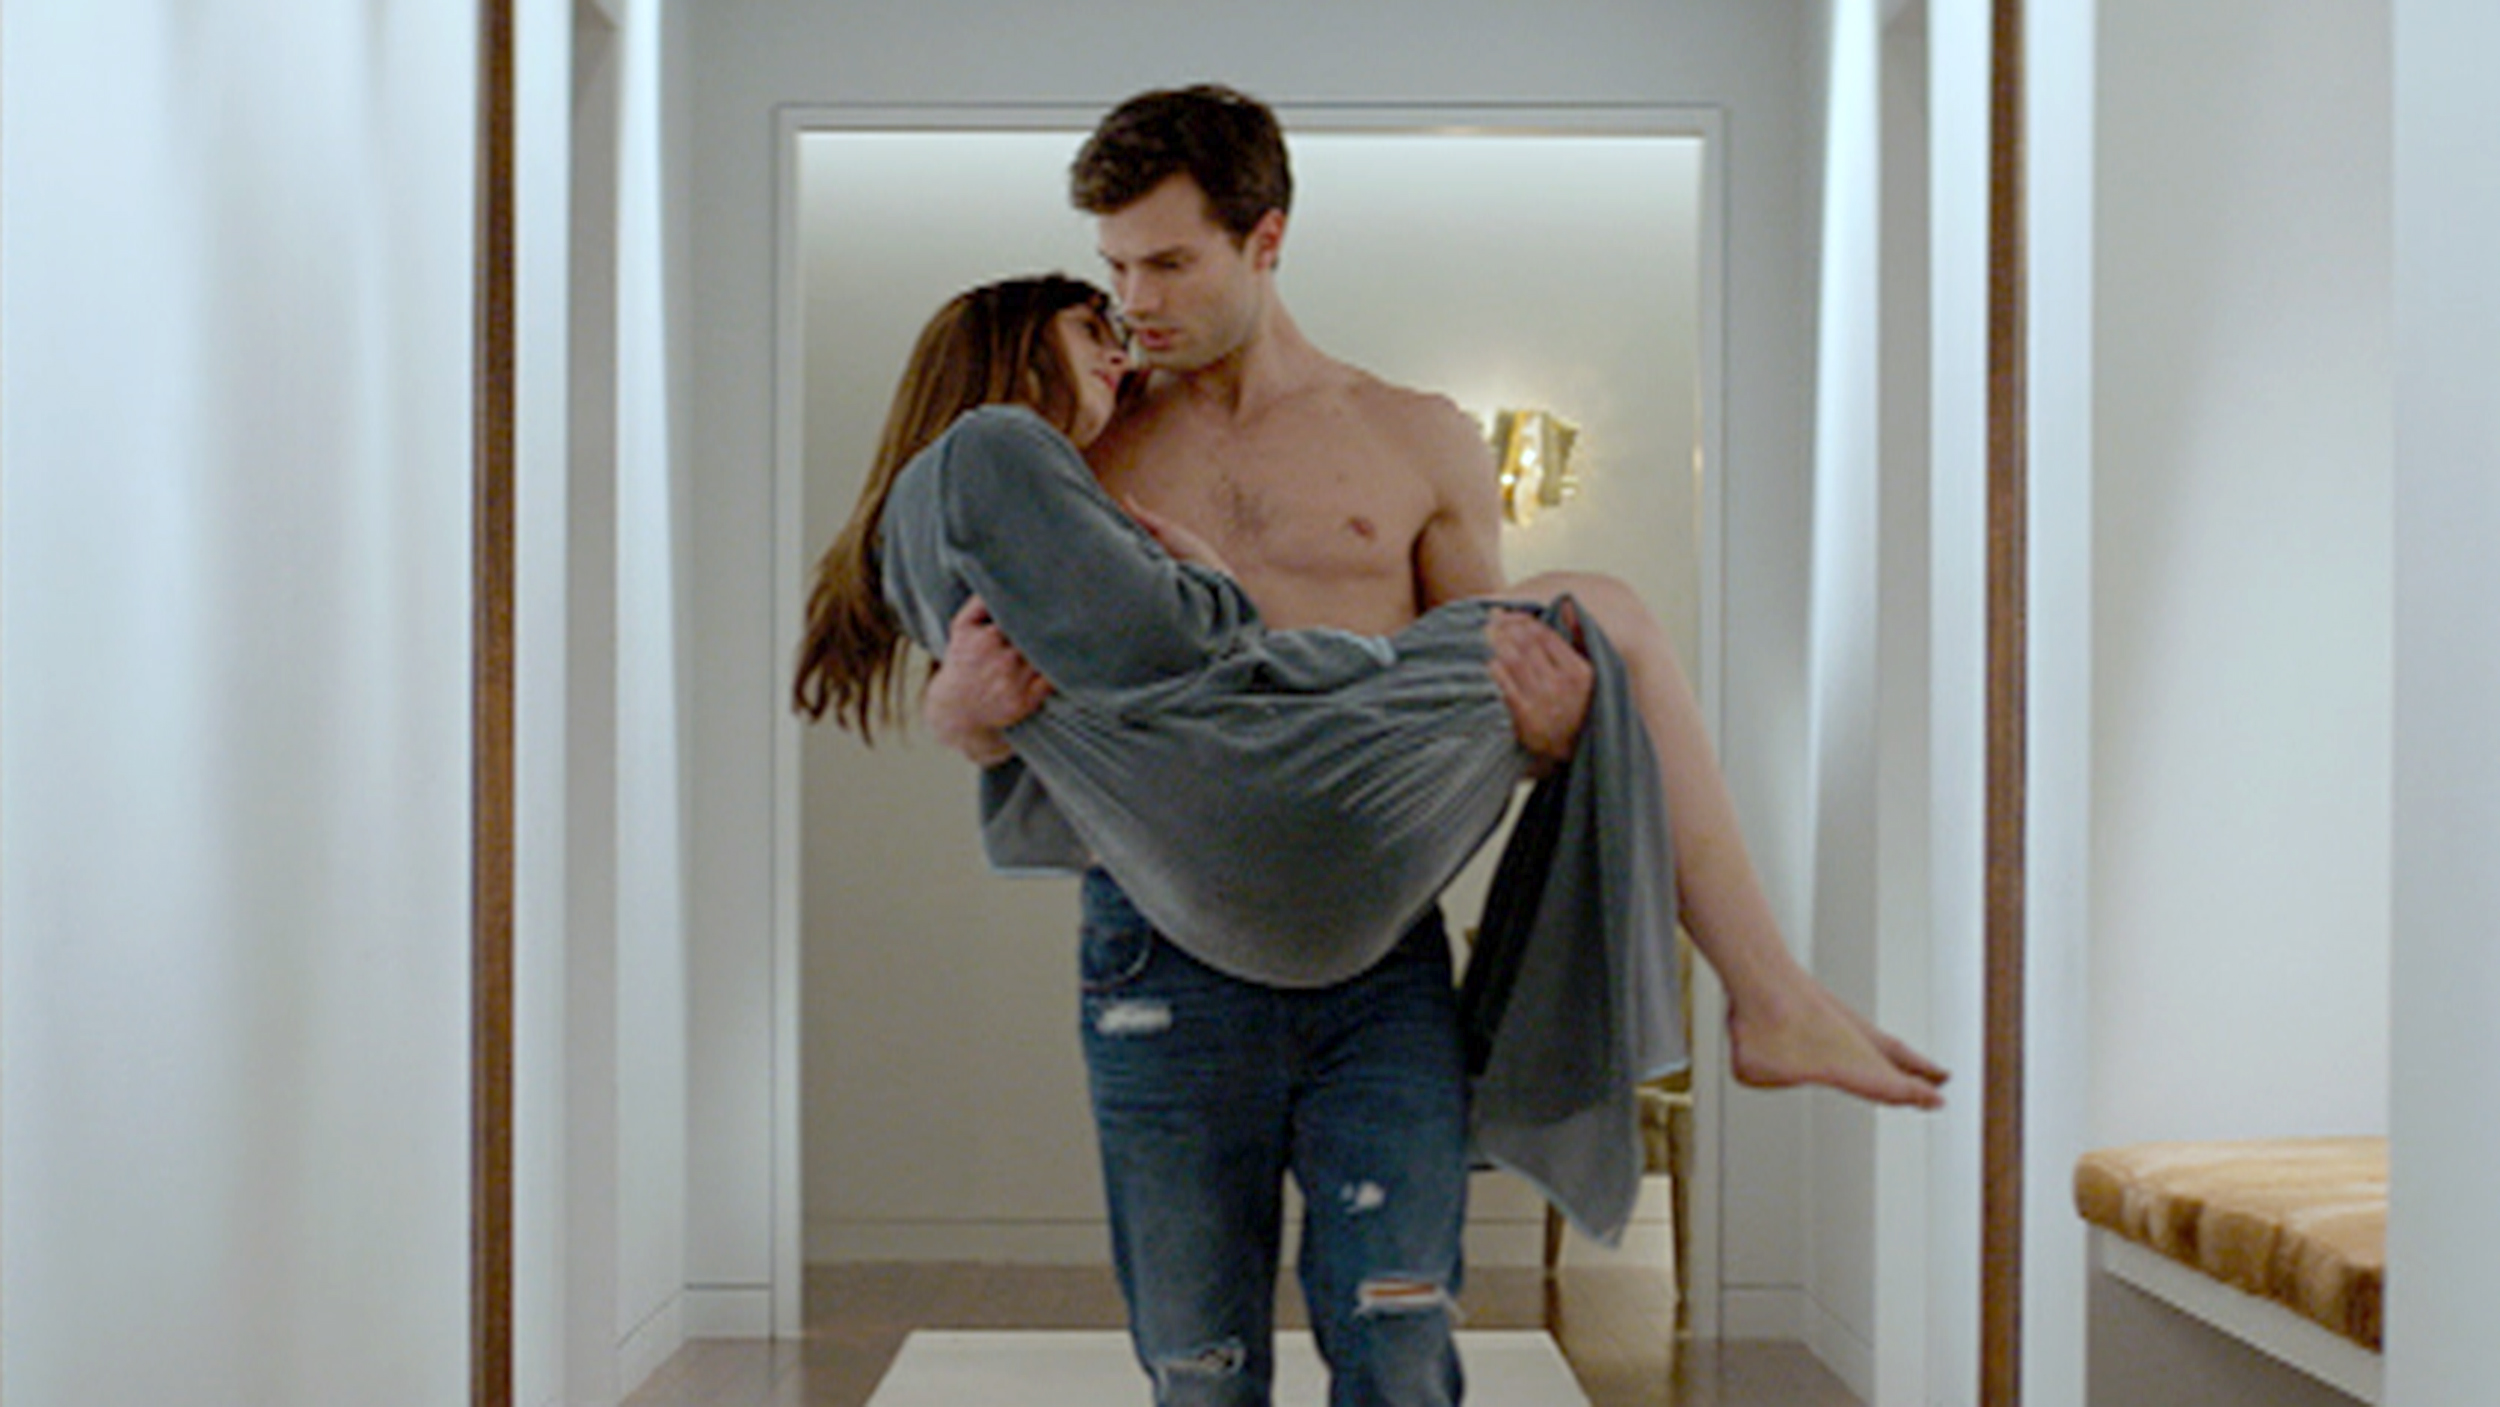 watch the full fifty shades of grey movie trailer what we watch the full fifty shades of grey movie trailer what we couldn t show on tv com